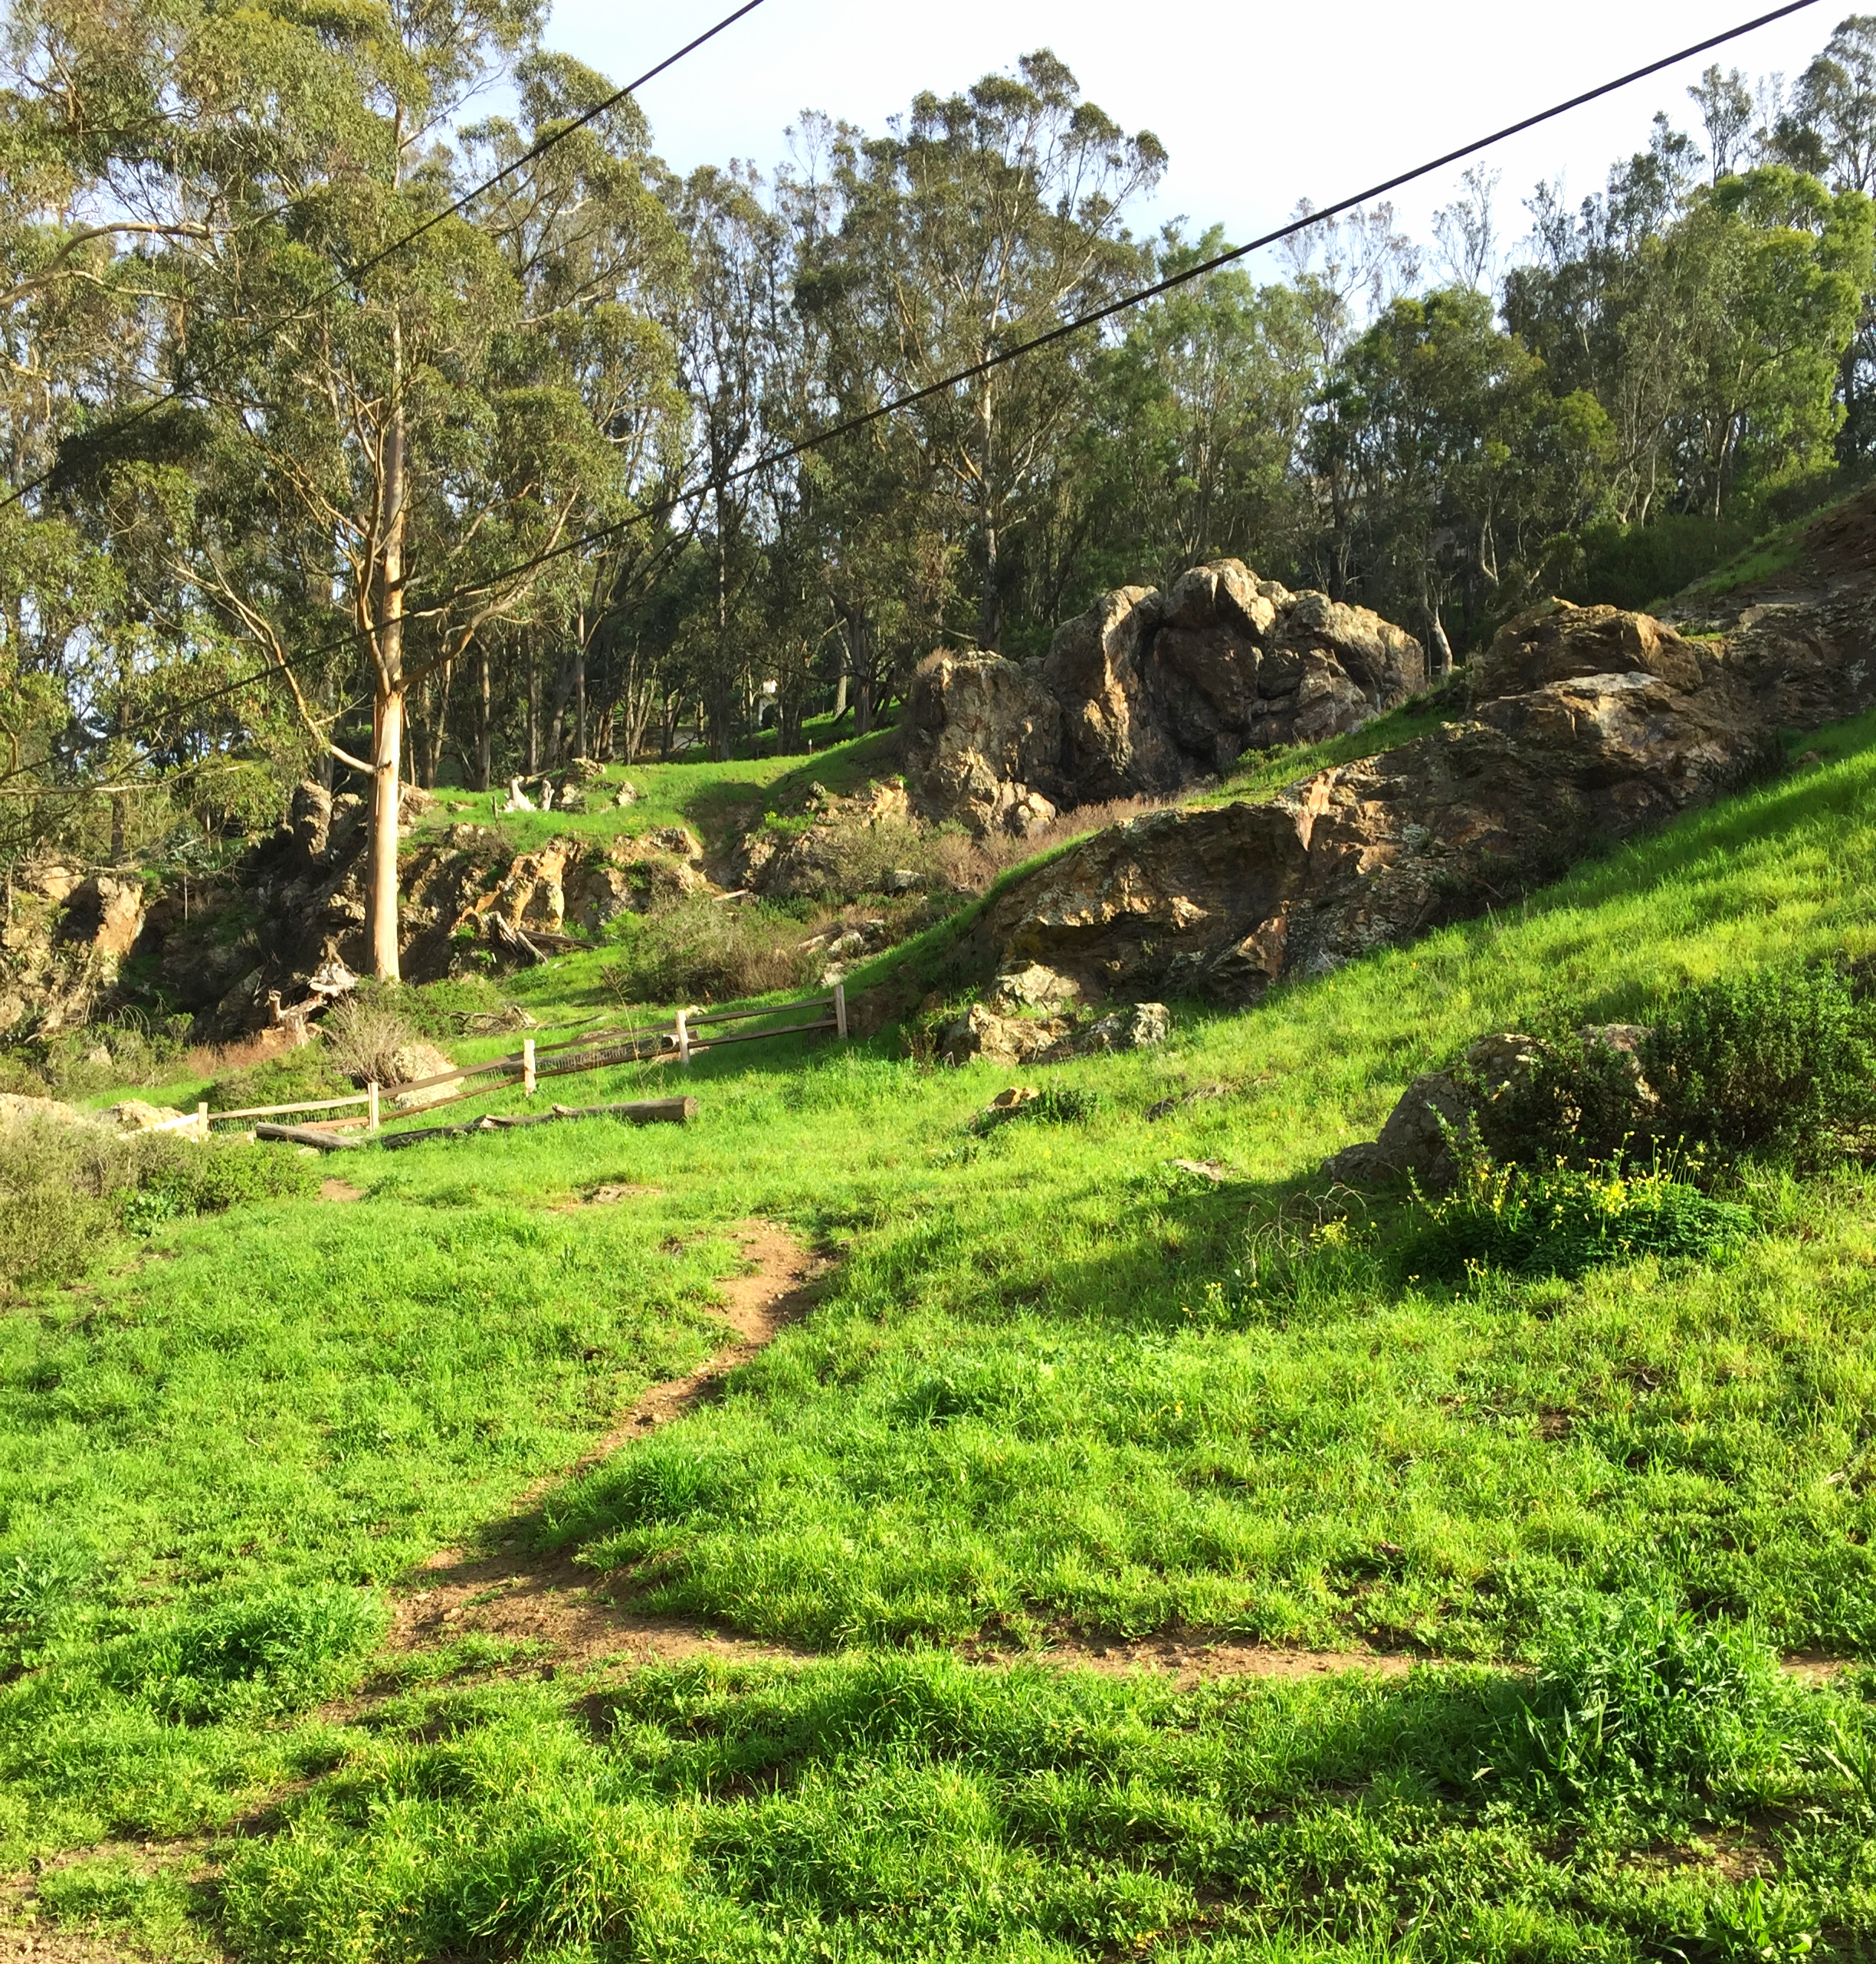 One of the many trails and green spaces of Glen Park.